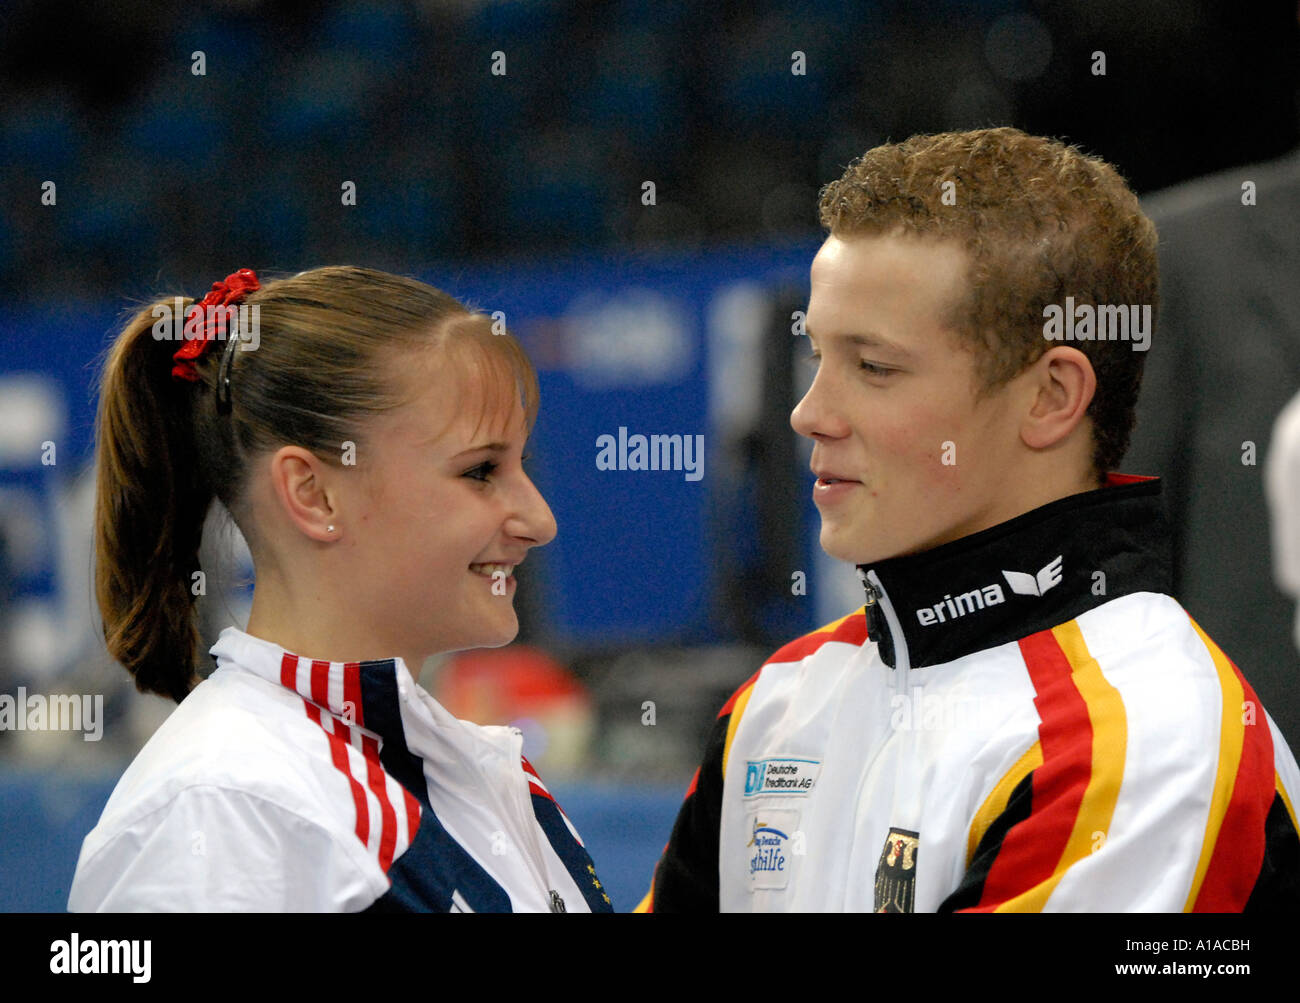 Fabian HAMBUeCHEN GER Flirting With Jana BIEGER USA At The Gymnastics World Cup In Stuttgart 2006